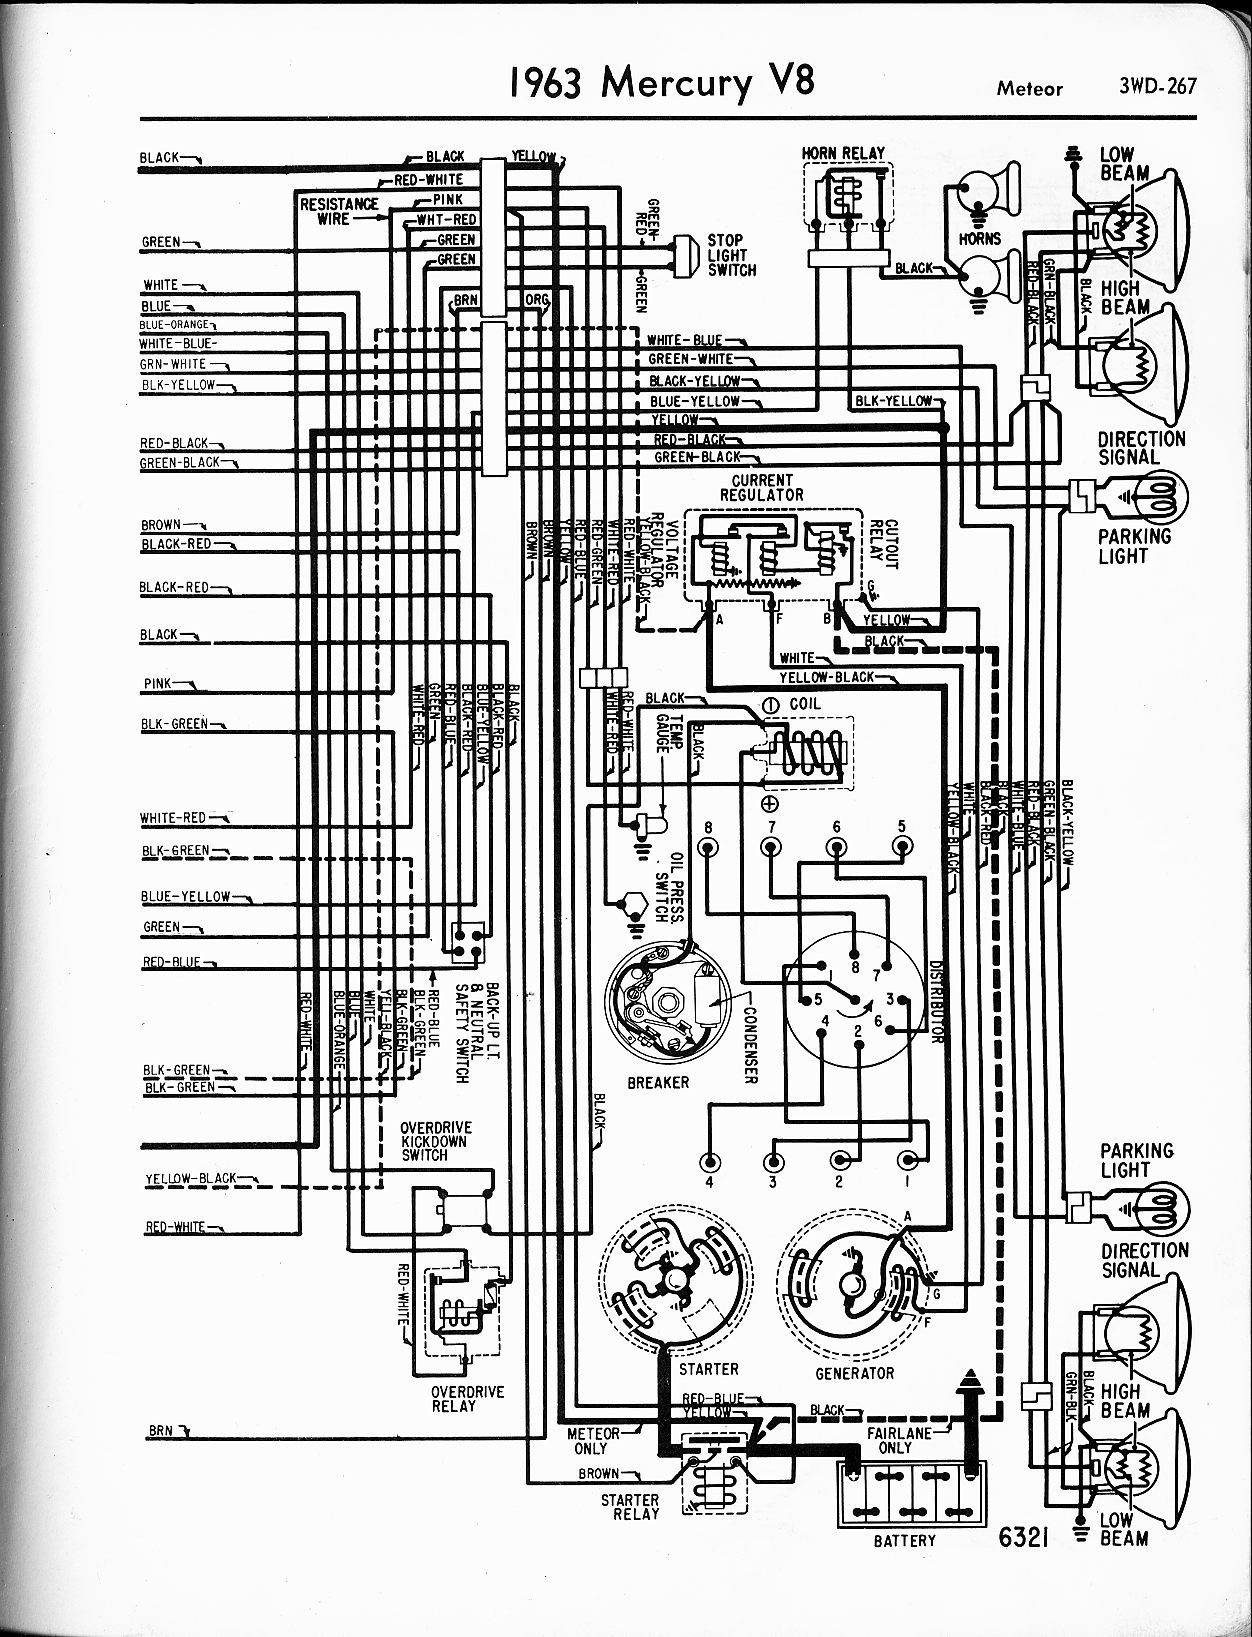 55 Chevy Drawing At Free For Personal Use Chevrolet Wiring Diagrams Online 1252x1637 Mercury